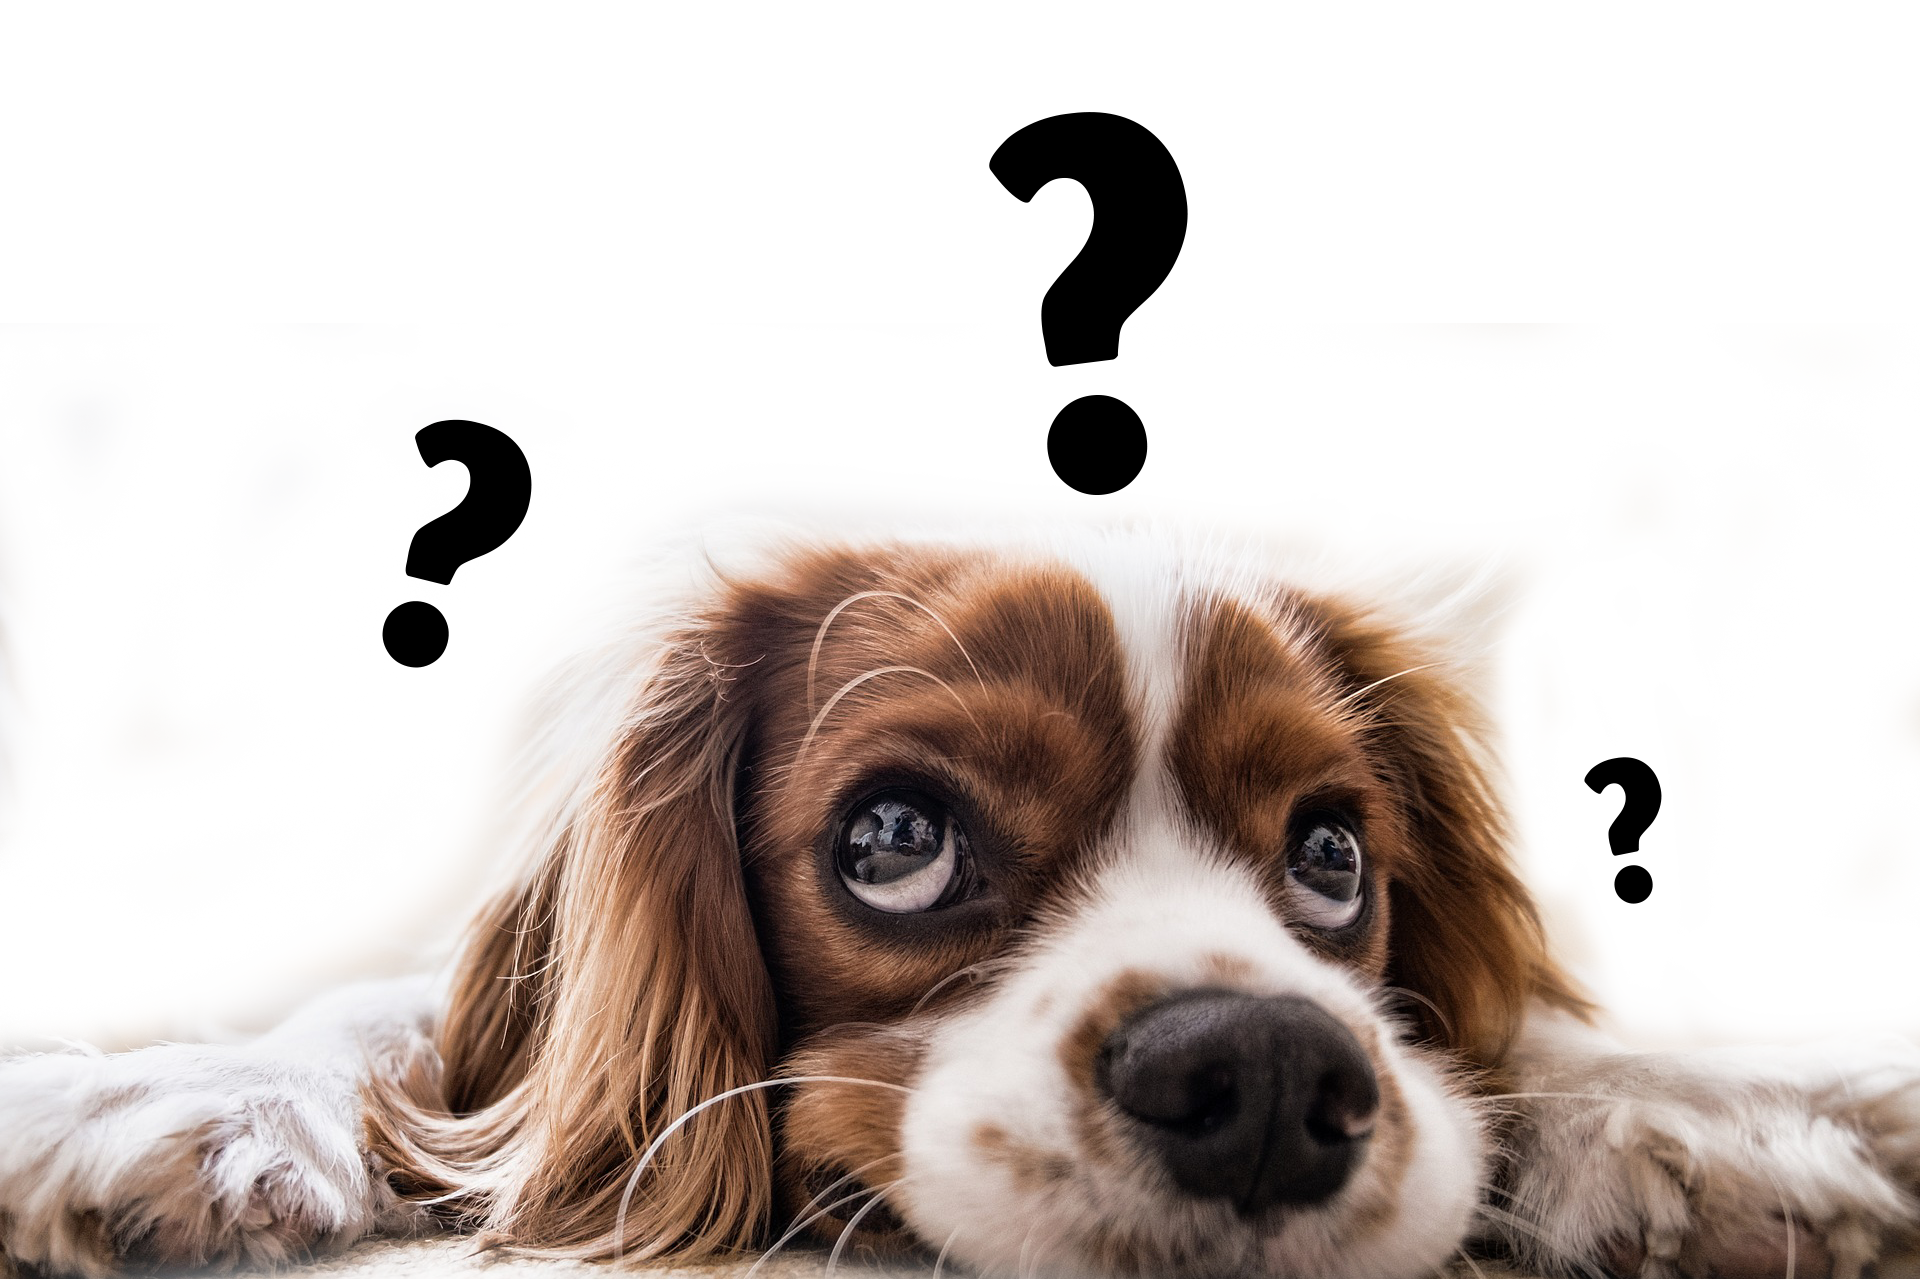 Confused dog png. Of people would